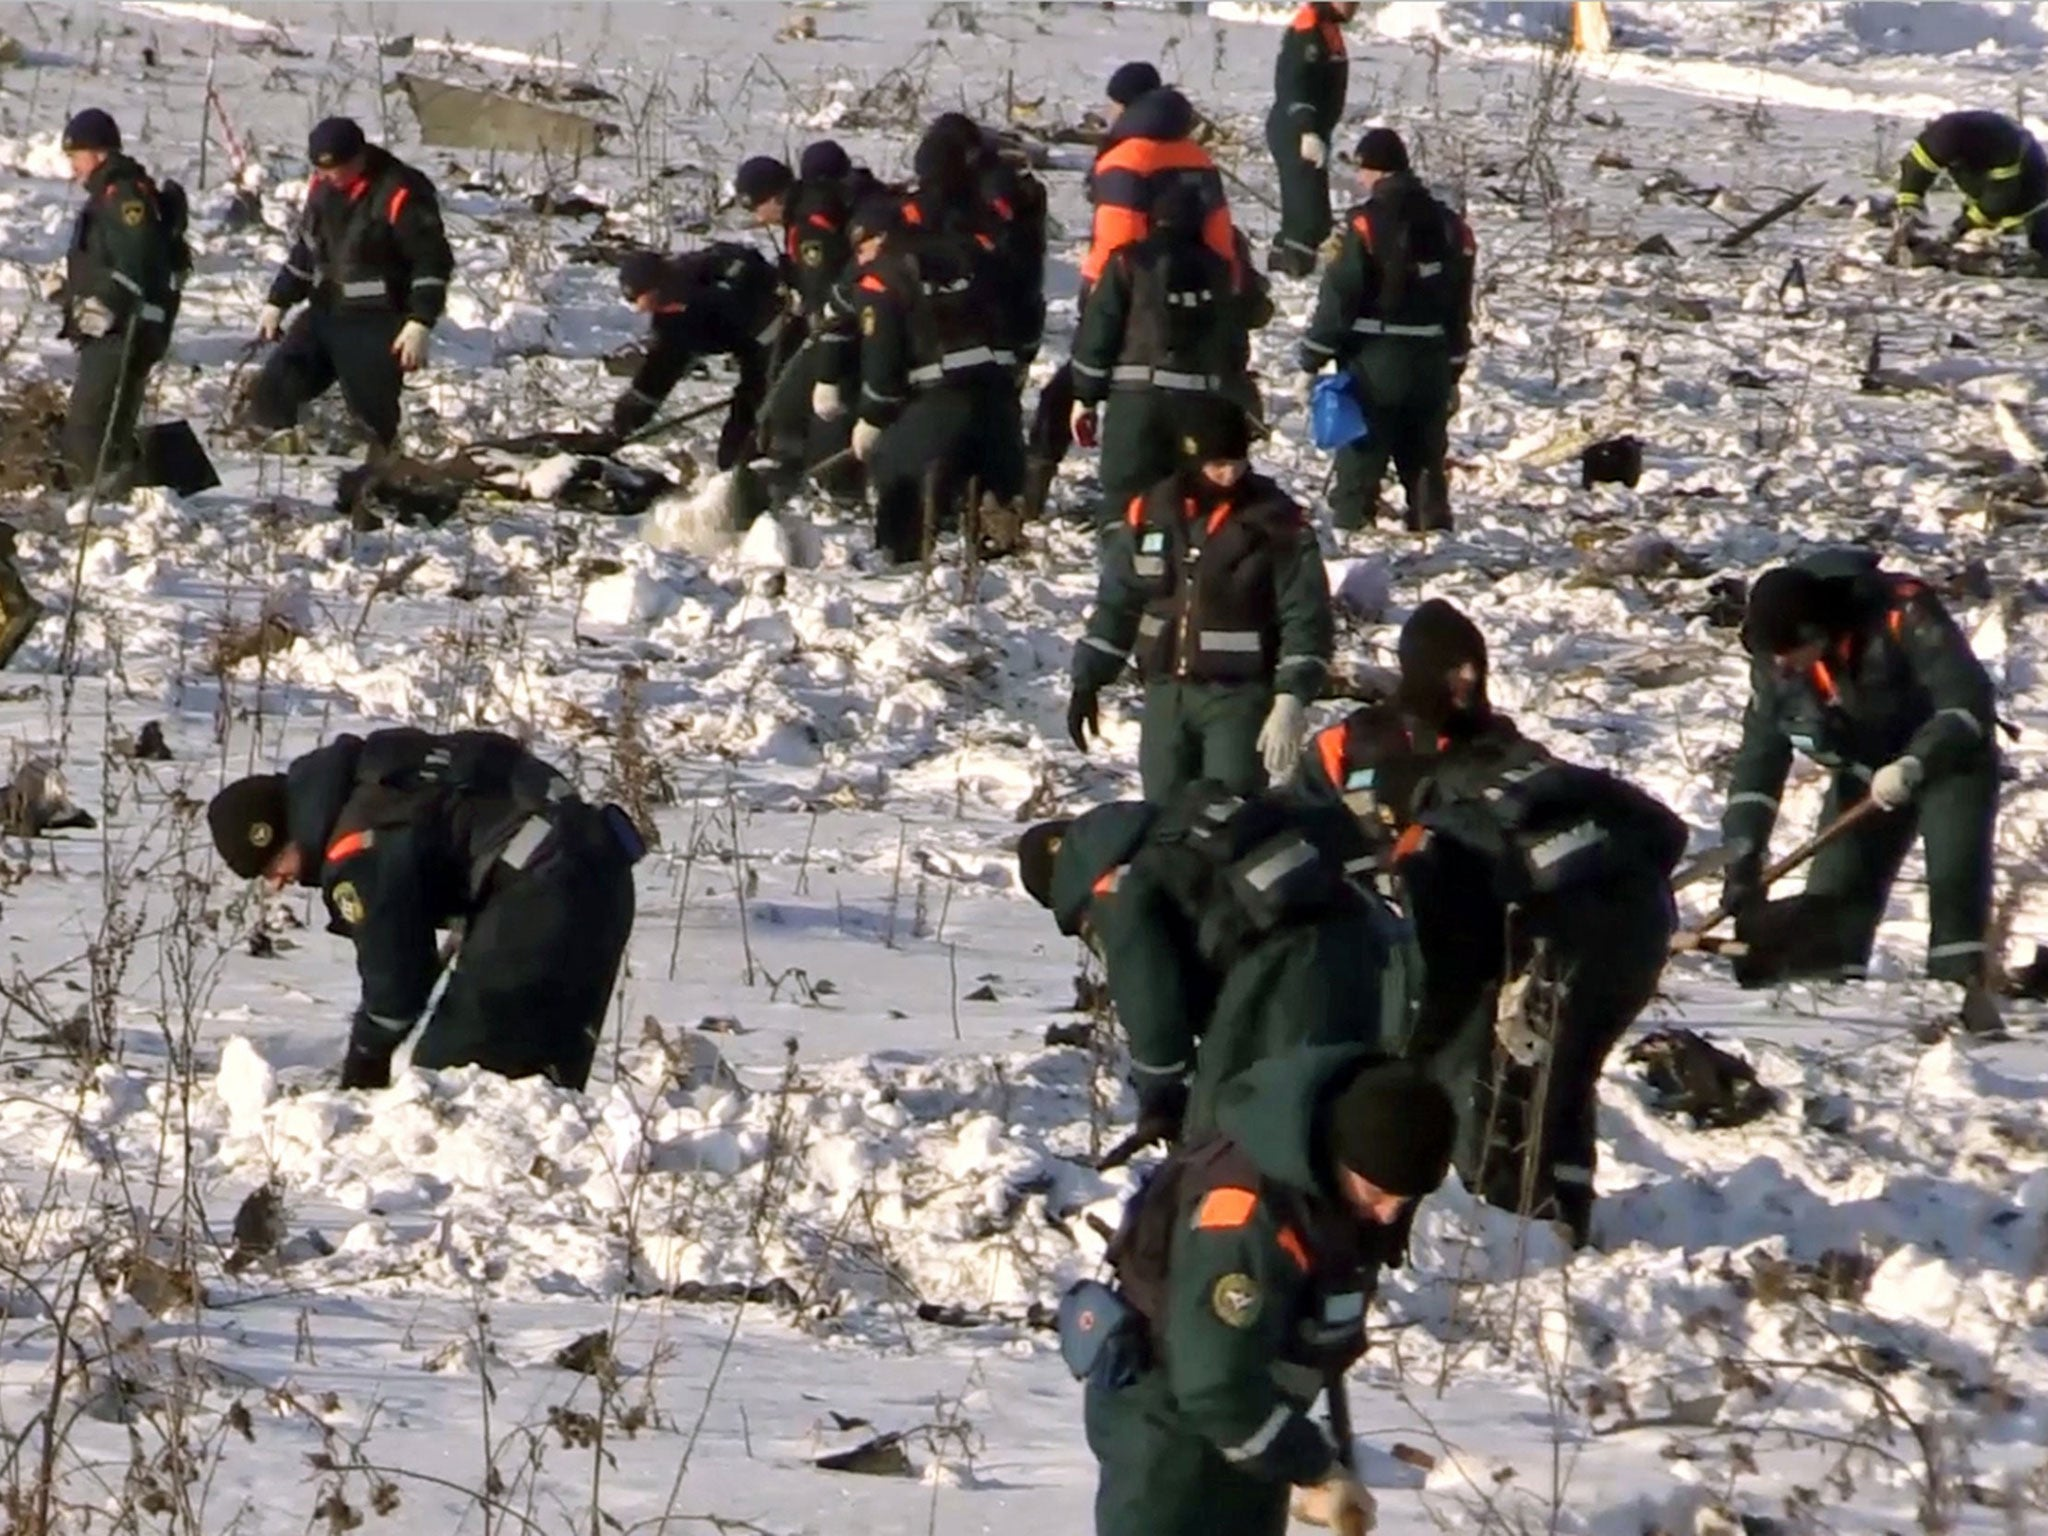 Moscow plane crash: Russian investigators try to piece together what brought down Saratov Flight 703